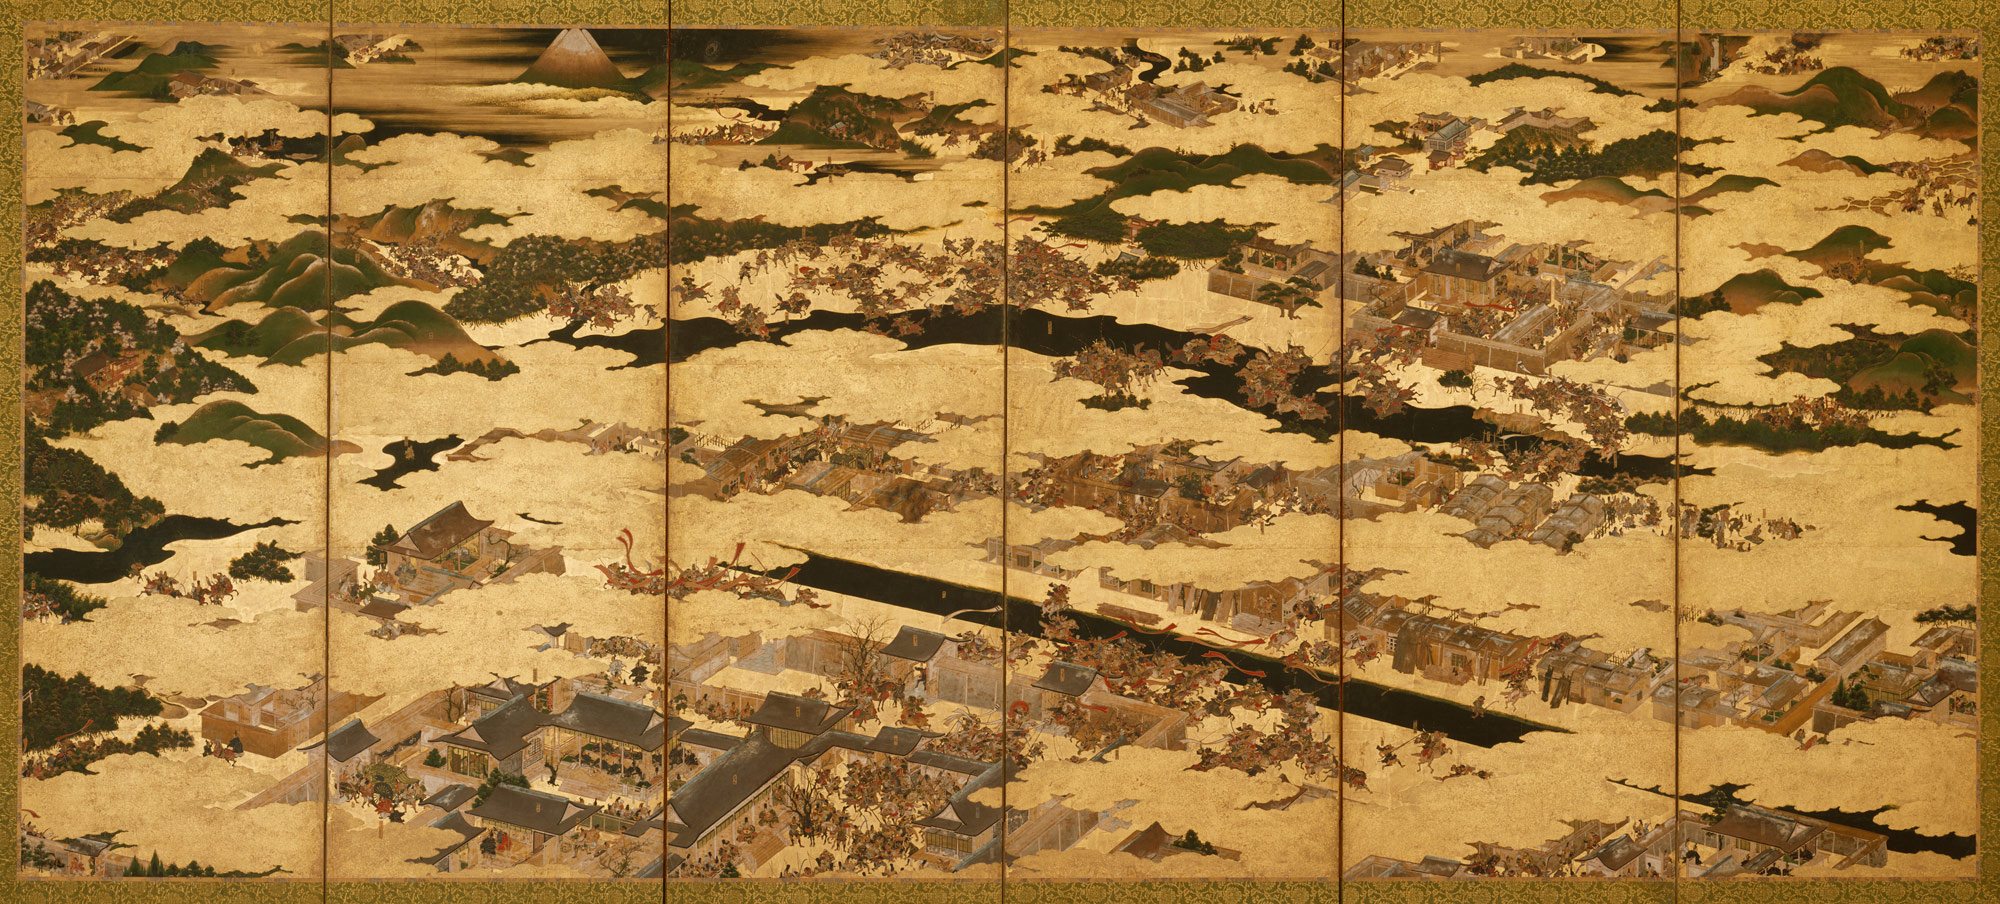 The Rebellions of the Hōgen and Heiji Eras | Work of Art | Heilbrunn ...